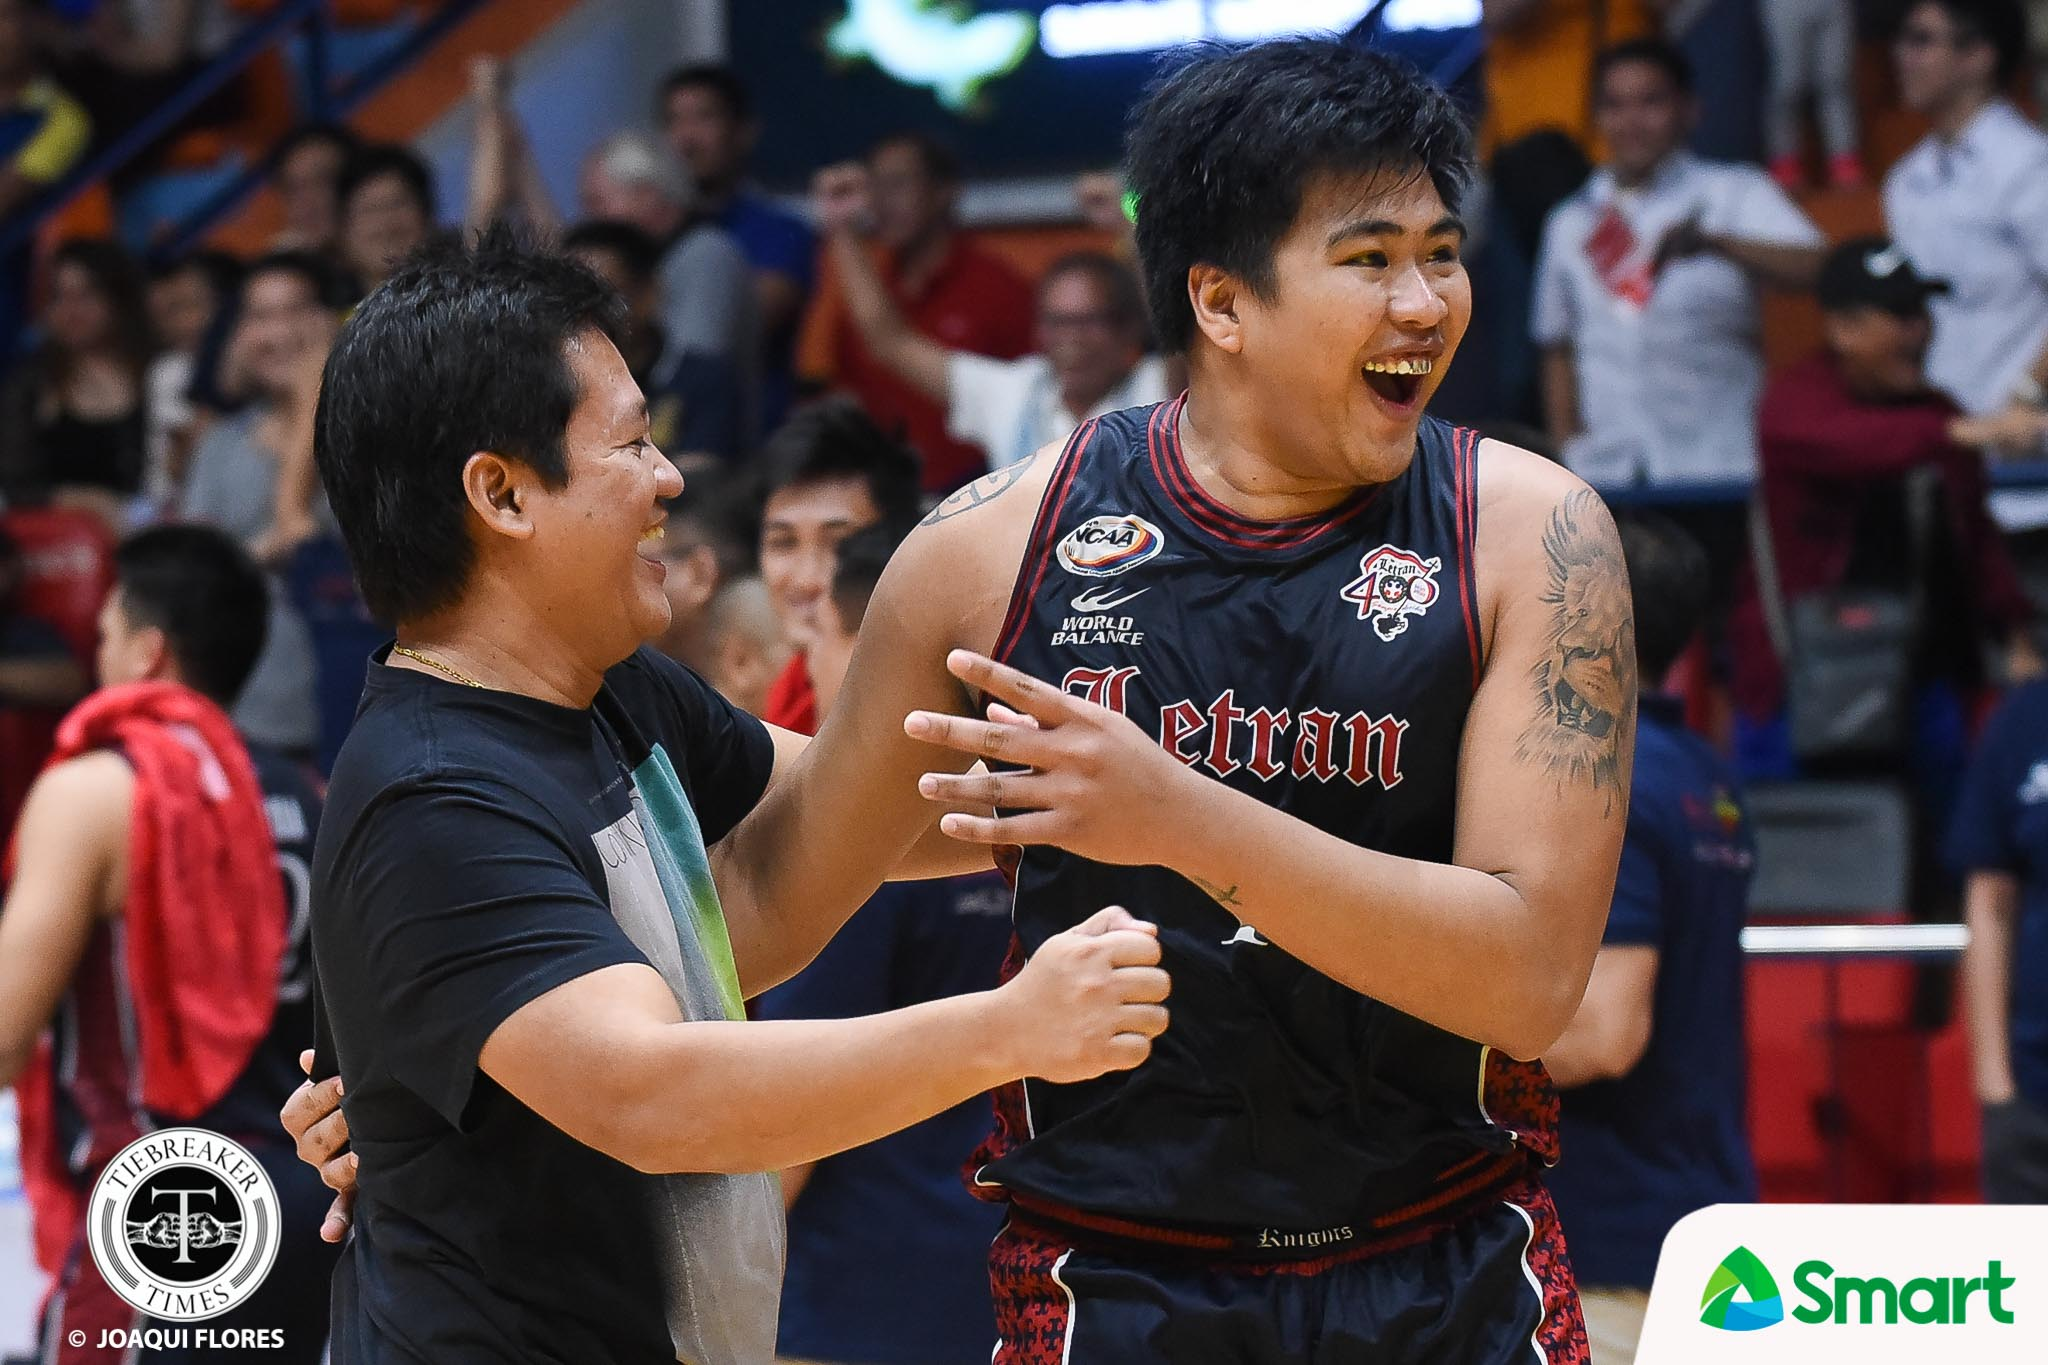 Tiebreaker Times Jerrick Balanza lifts spirits of Bong Quinto, Letran Basketball CSJL NCAA News  NCAA Season 94 Seniors Basketball NCAA Season 94 Letran Seniors Basketball Larry Muyang Bong Quinto